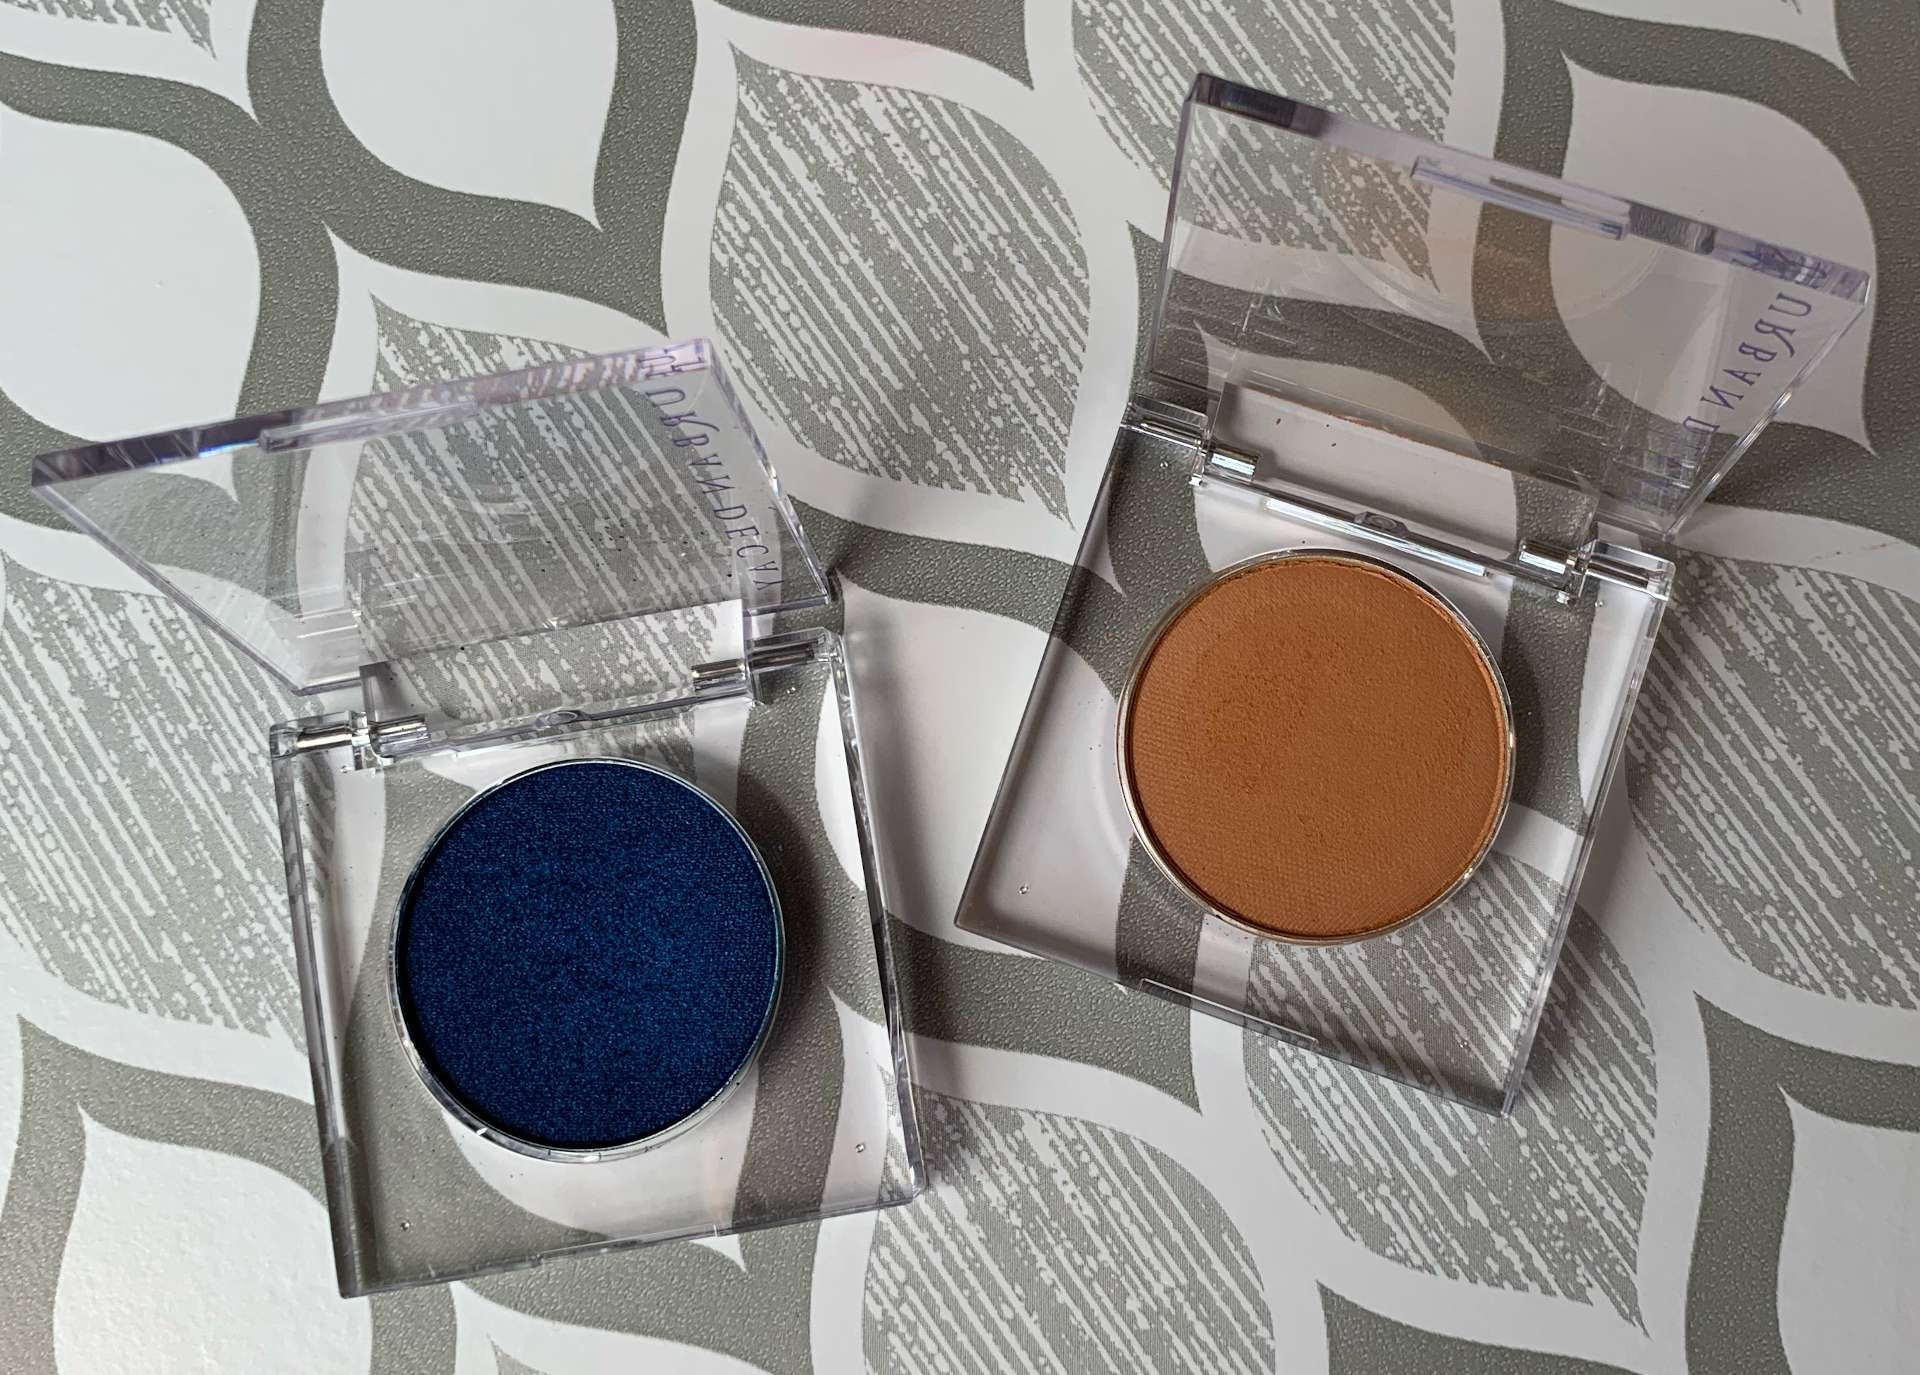 Urban Decay 24/7 Eyeshadow (Charged and Fazed Swatches)